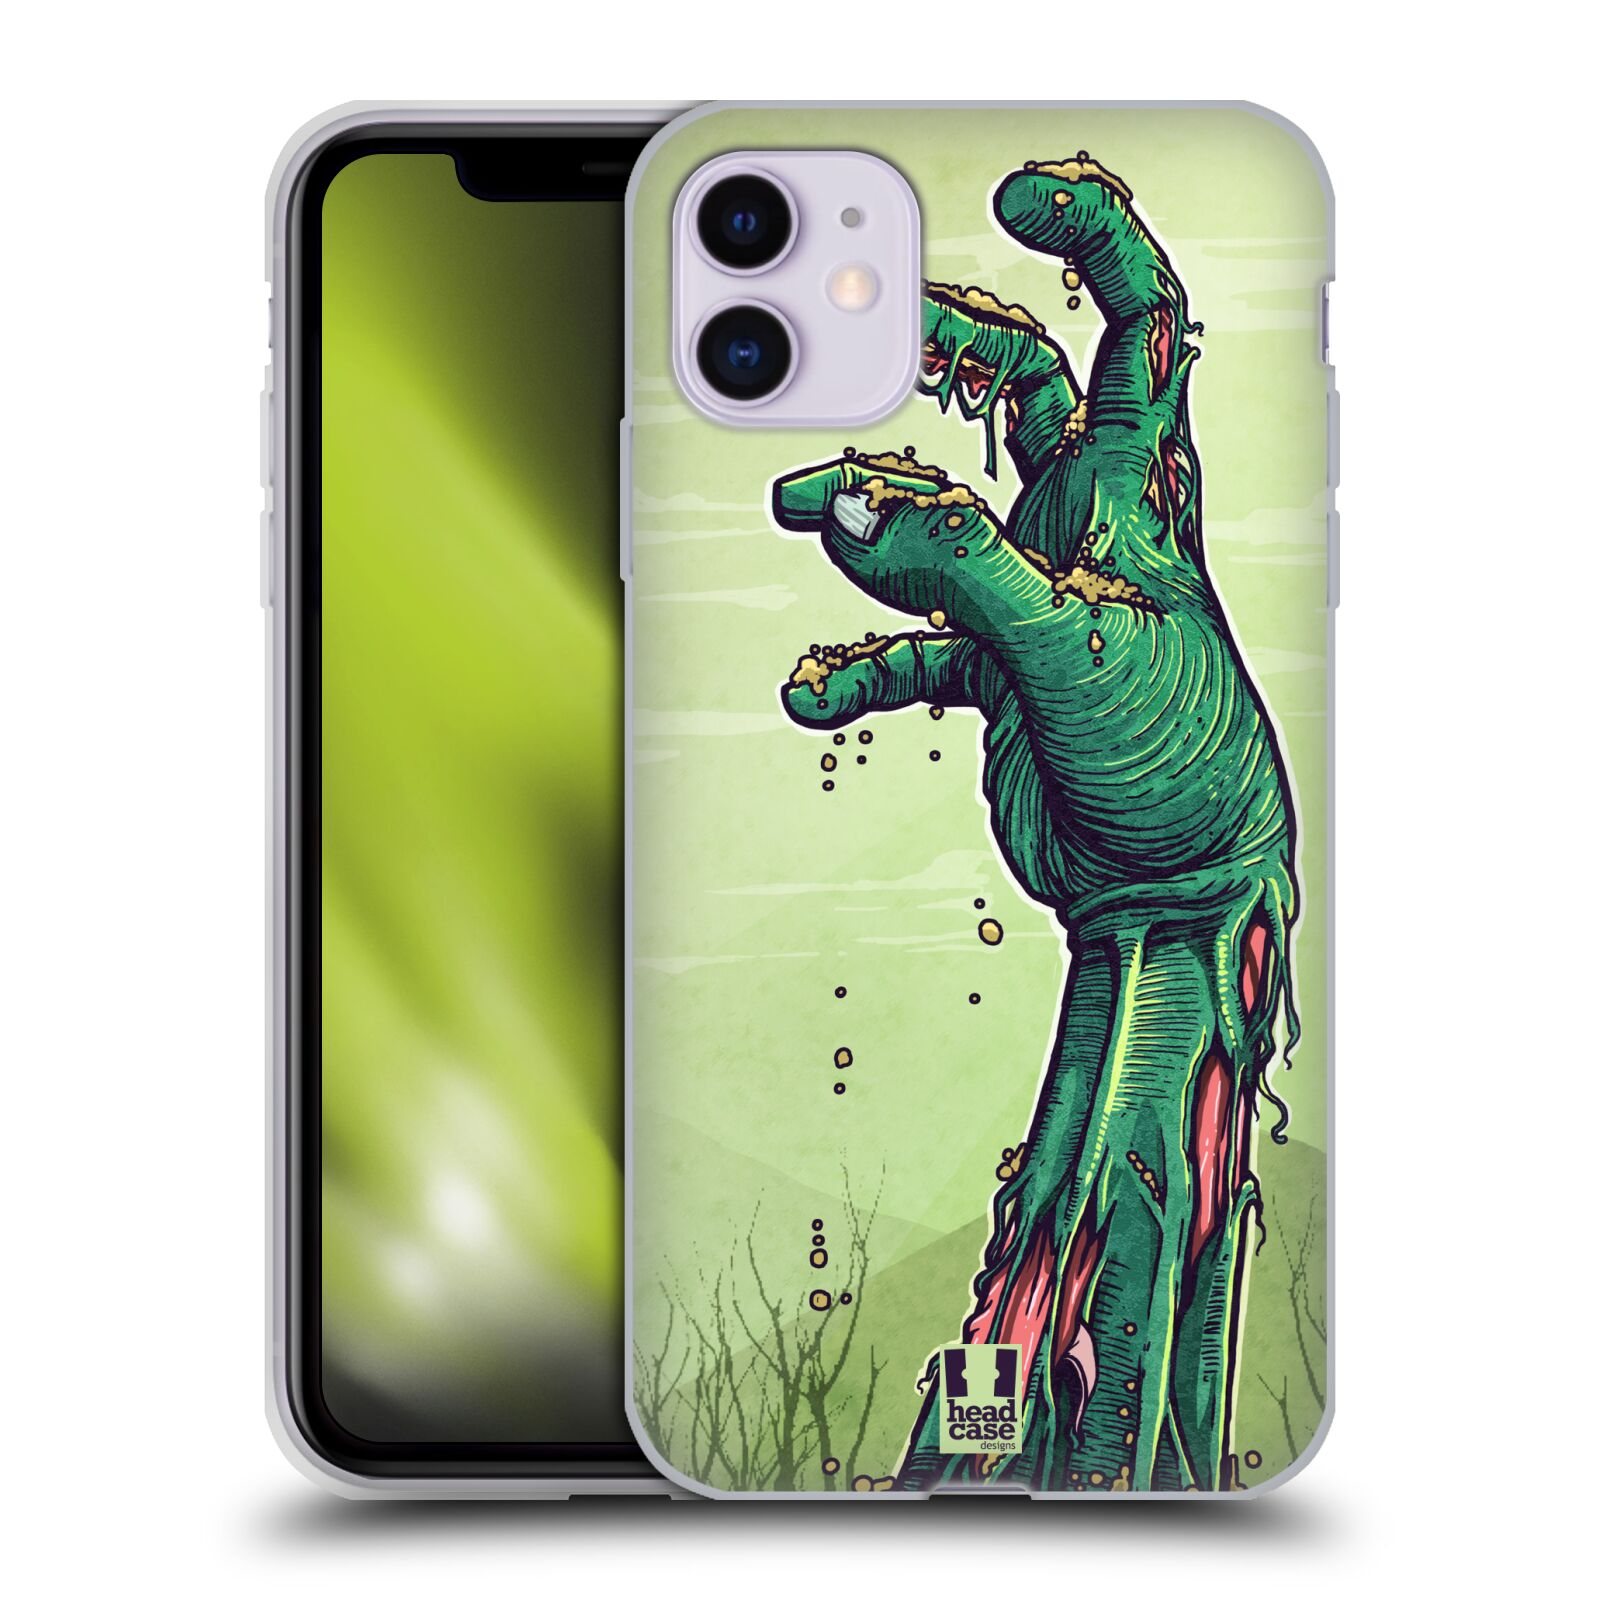 Silikonové pouzdro na mobil Apple iPhone 11 - Head Case - ZOMBIE RUKA